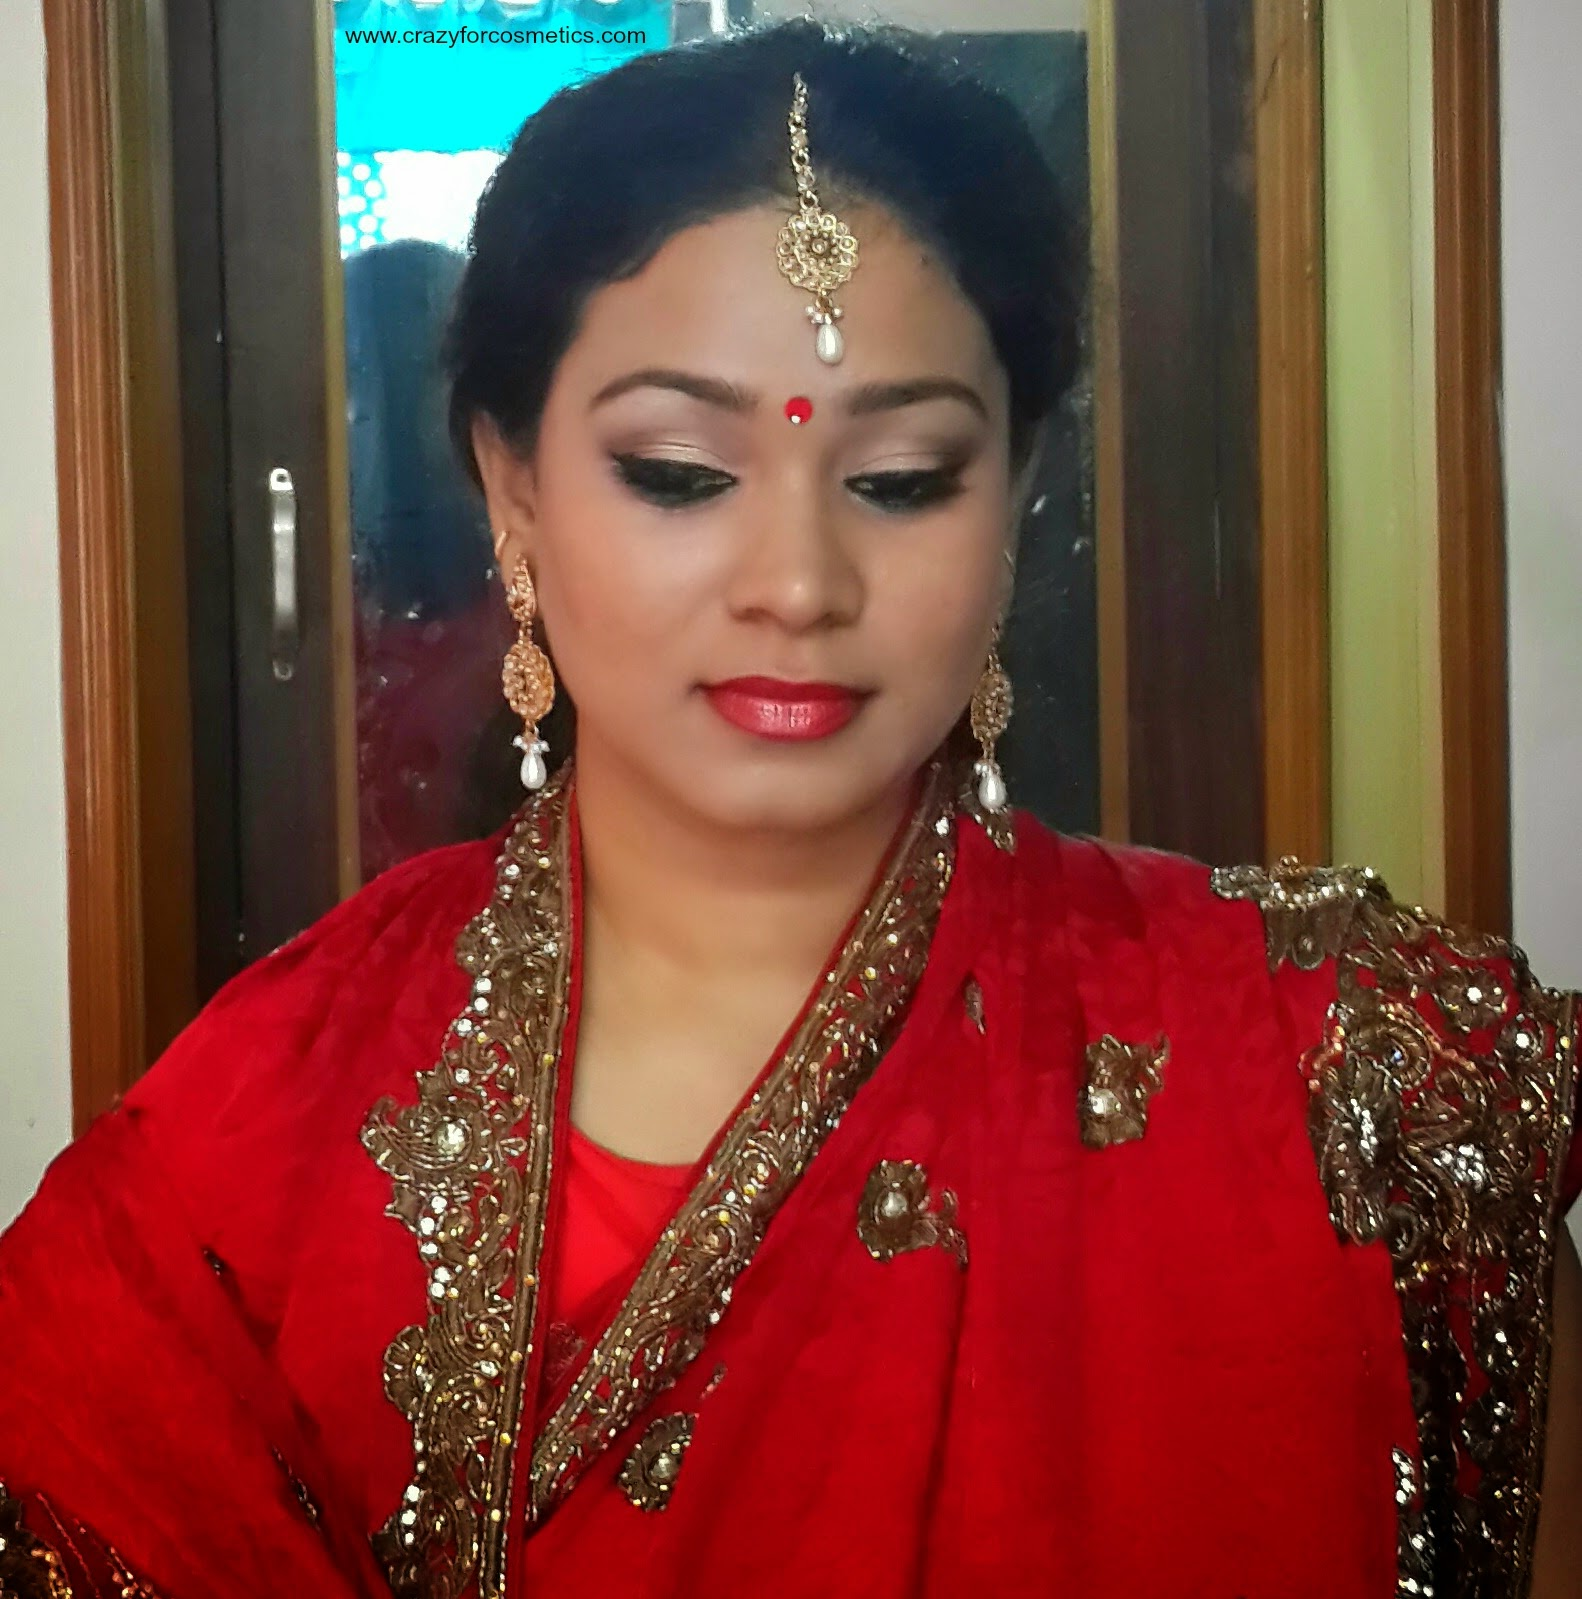 Bengali Bridal makeup-Bengali Bridal makeup tutorial- Indian Bridal makeup tutorial-Indian bengali Bridal makeup step by step-Indian eyeshadow makeup tutorial-Bengali wedding makeup eyemakeup tips-Indian bridal makeup tips blog-Bengali weddings-Bengali saree-Bengali wedding saree